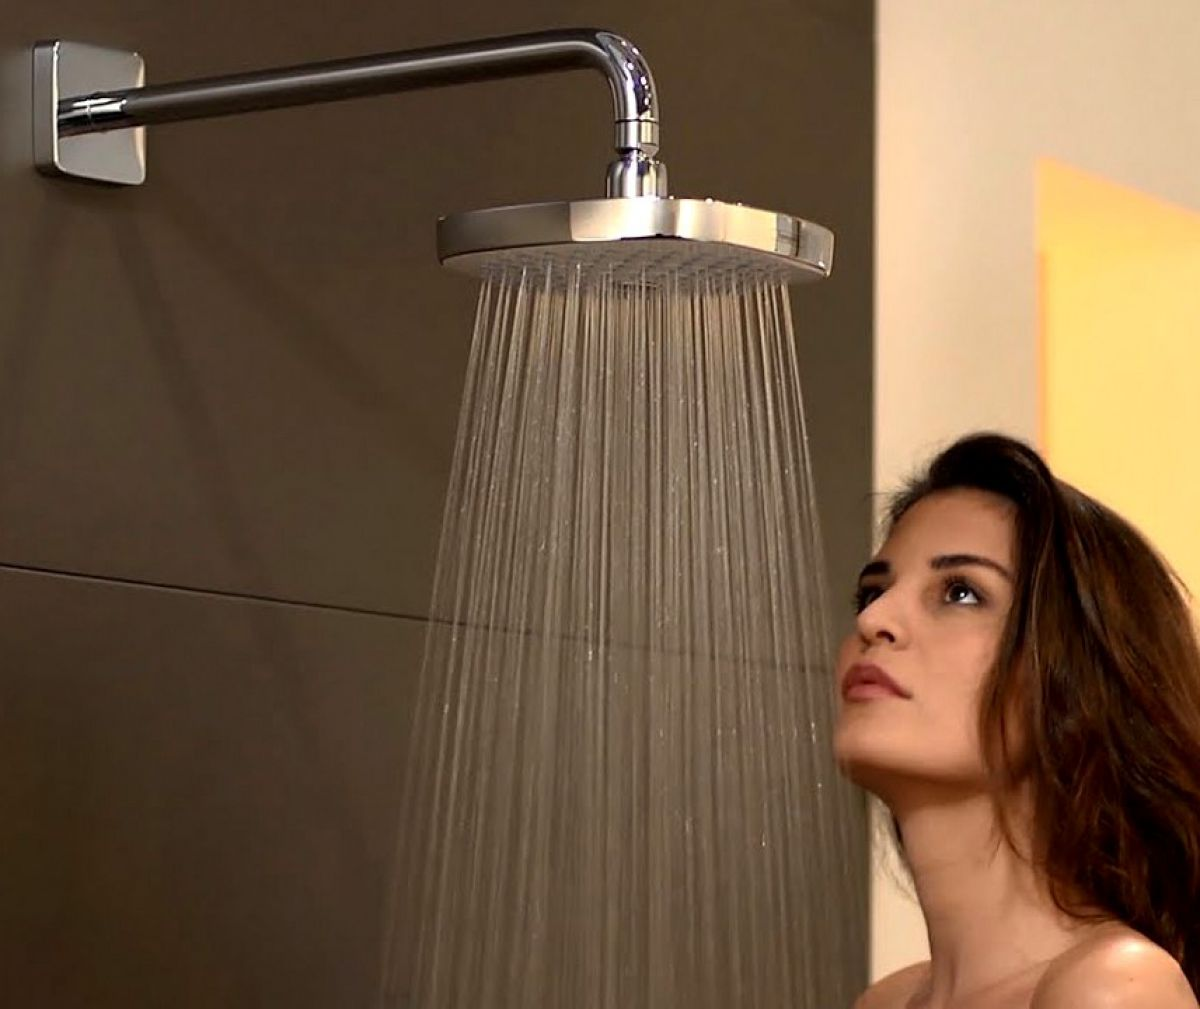 Hansgrohe Croma 2jet Hansgrohe Croma Select E 180 Overhead Shower